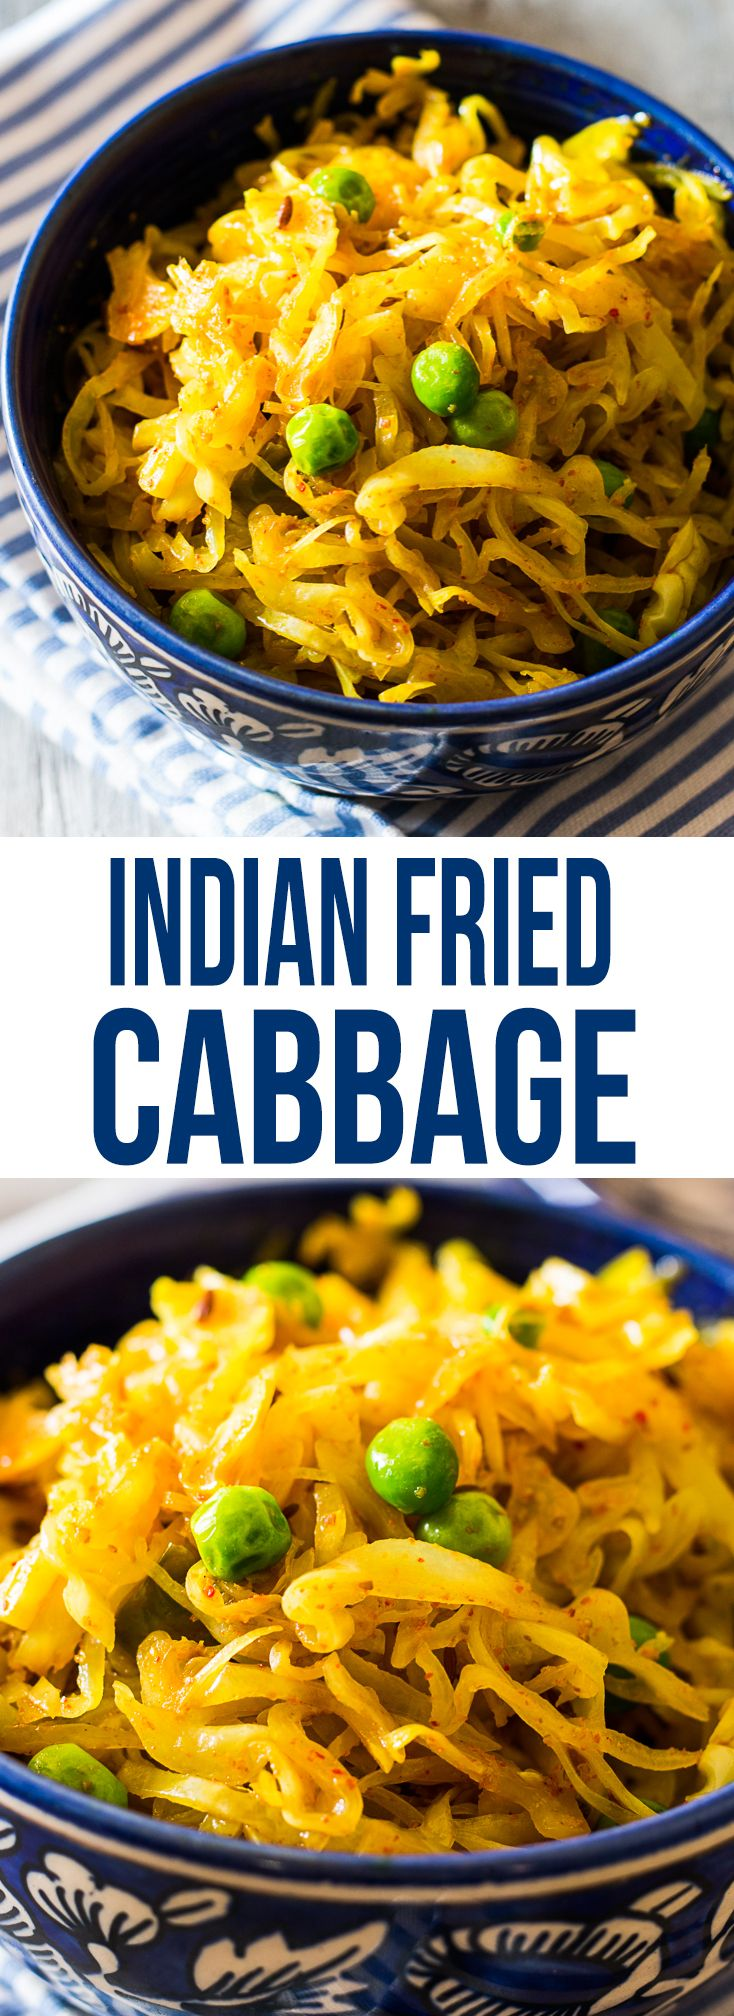 indian fried cabbage pin                                                       …